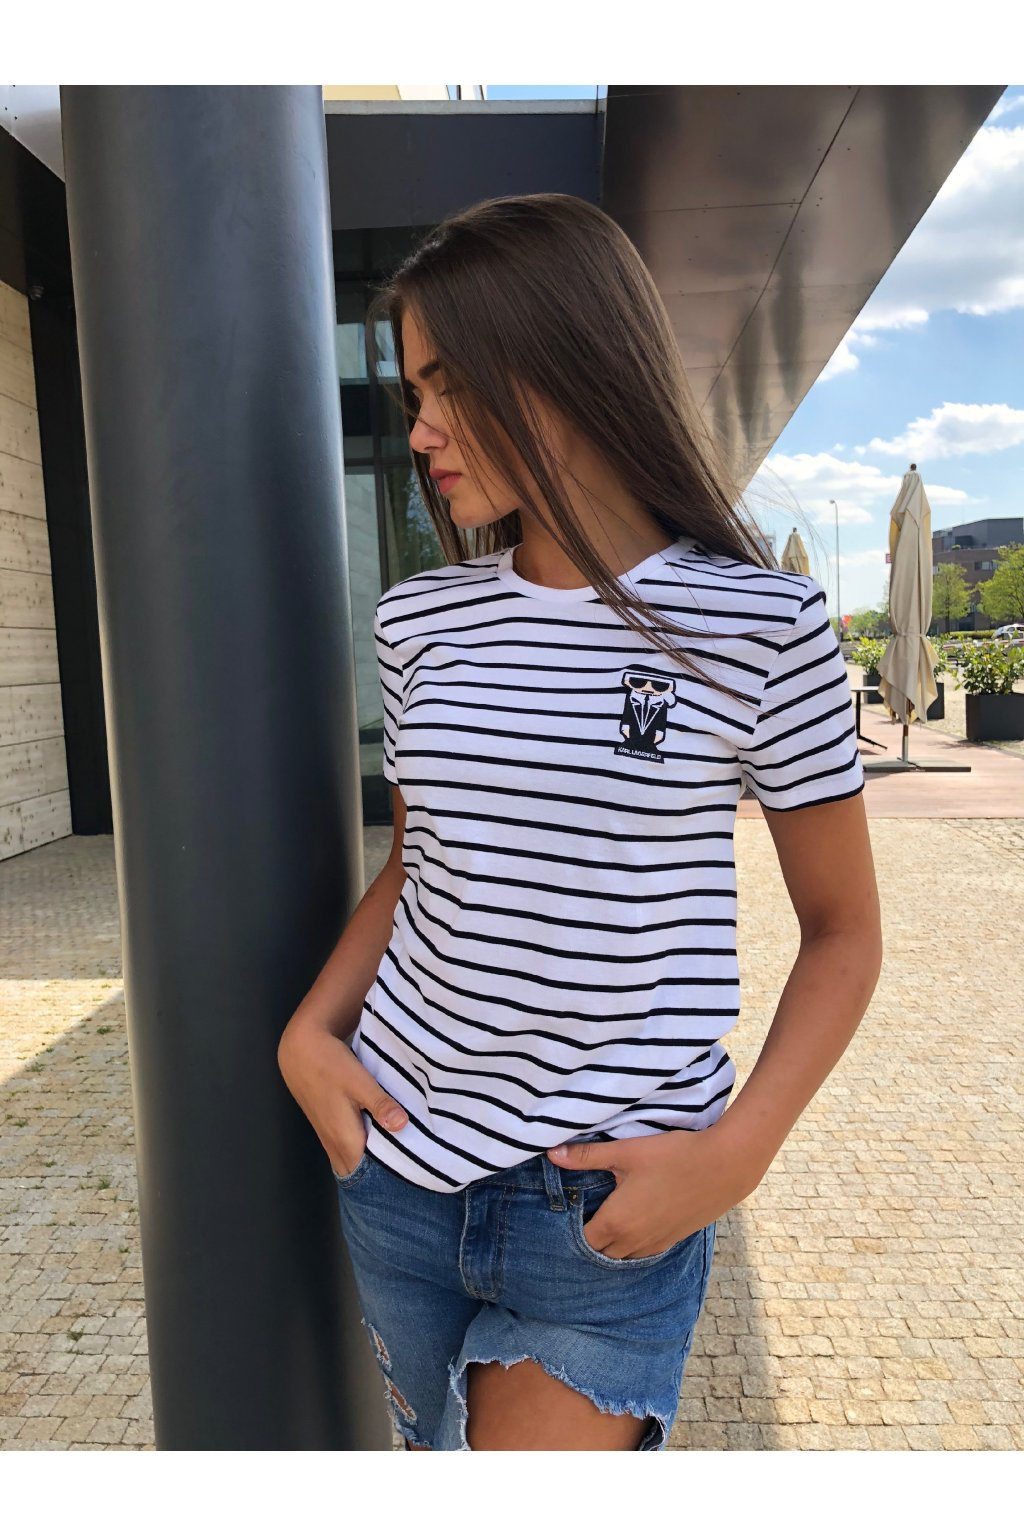 damske tricko karl lagerfeld kocktail karl stripe patch tee white black eshopat cz 4